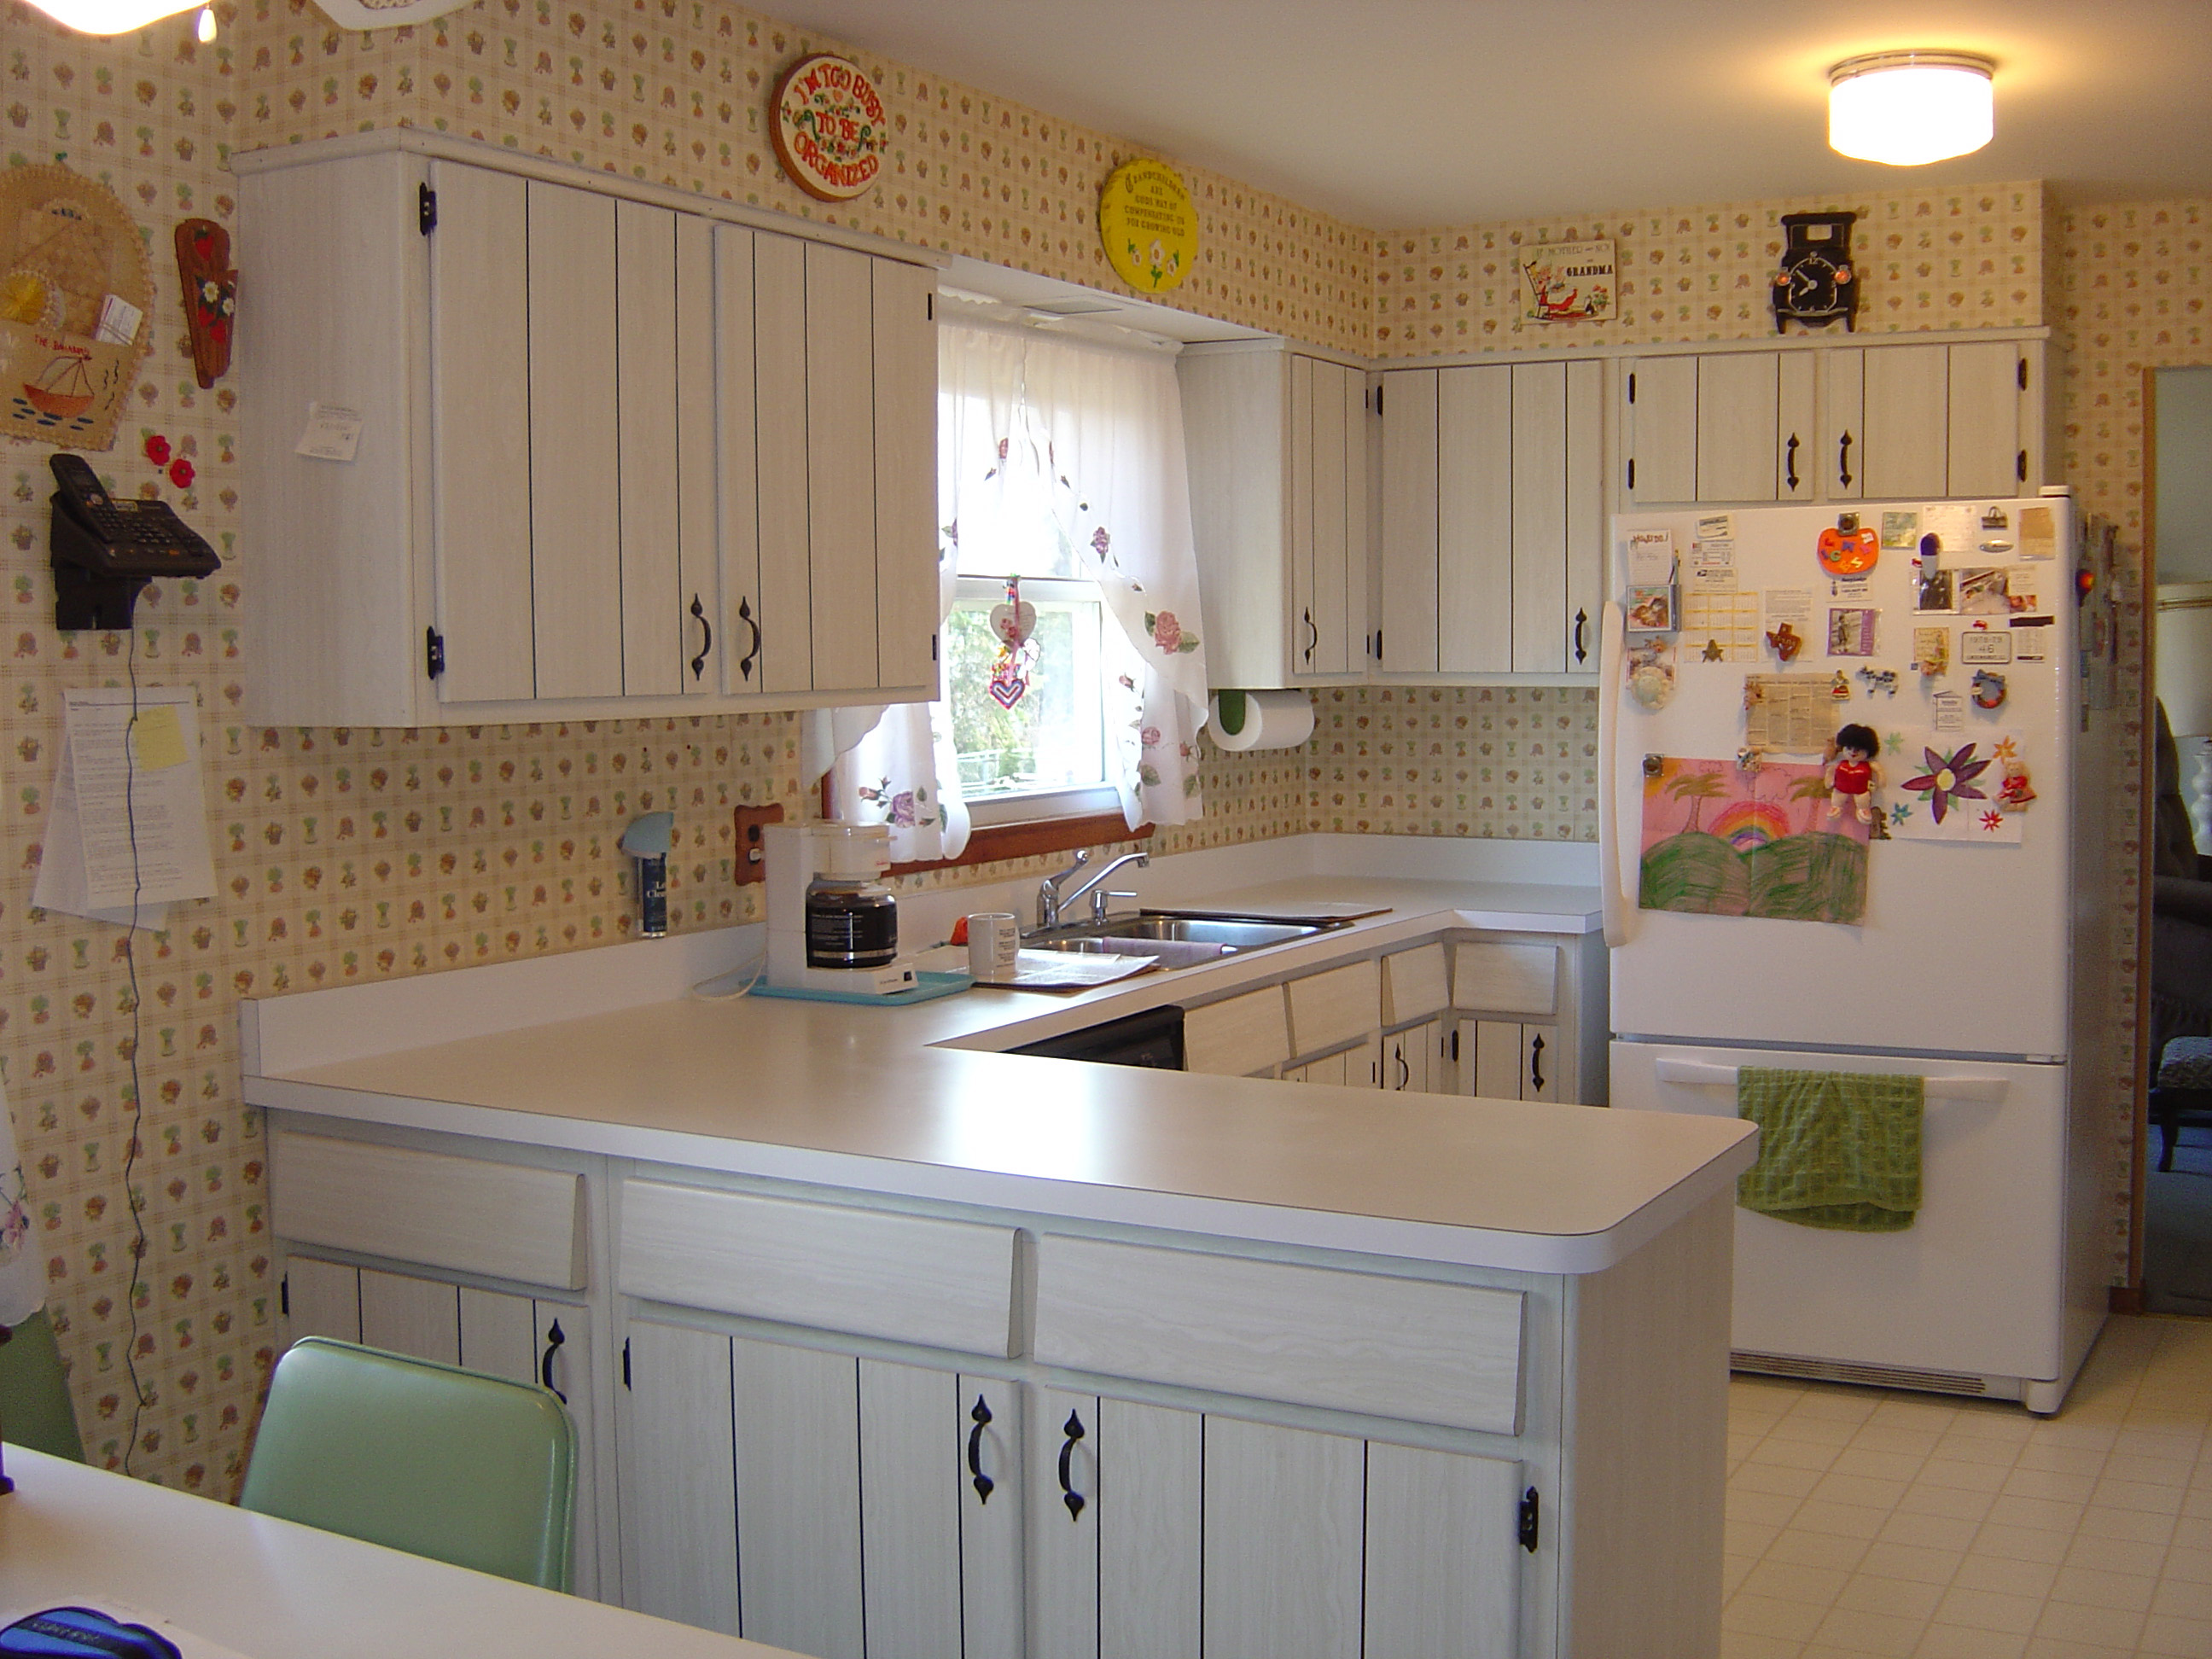 kitchen cabinet styles. J 1  Popular Cabinet Styles in the 70 s 80 and 90 Affordable